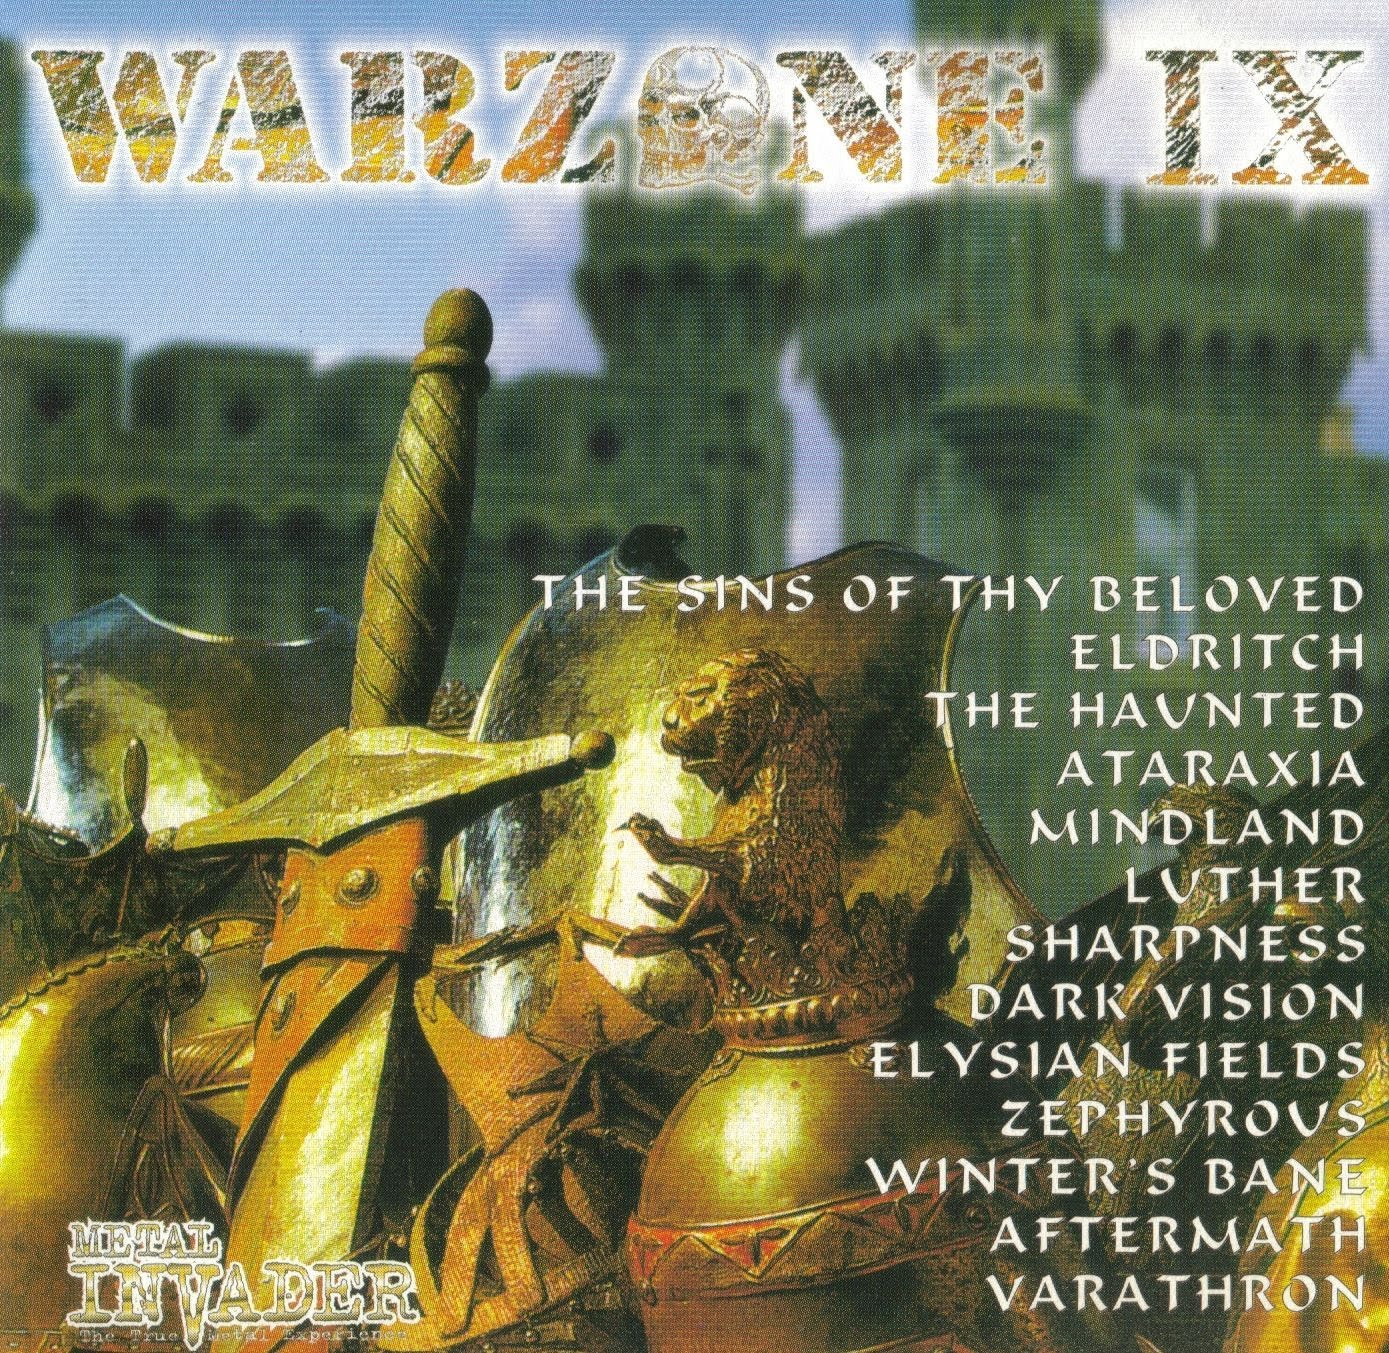 Warzone IX (9) - 1998 1. The Sins Of Thy Beloved (Nor) - My Love 2. Eldritch (Ita) - Bleed Mask Bleed 3. The Haunted (Swe) - Bullet Hole